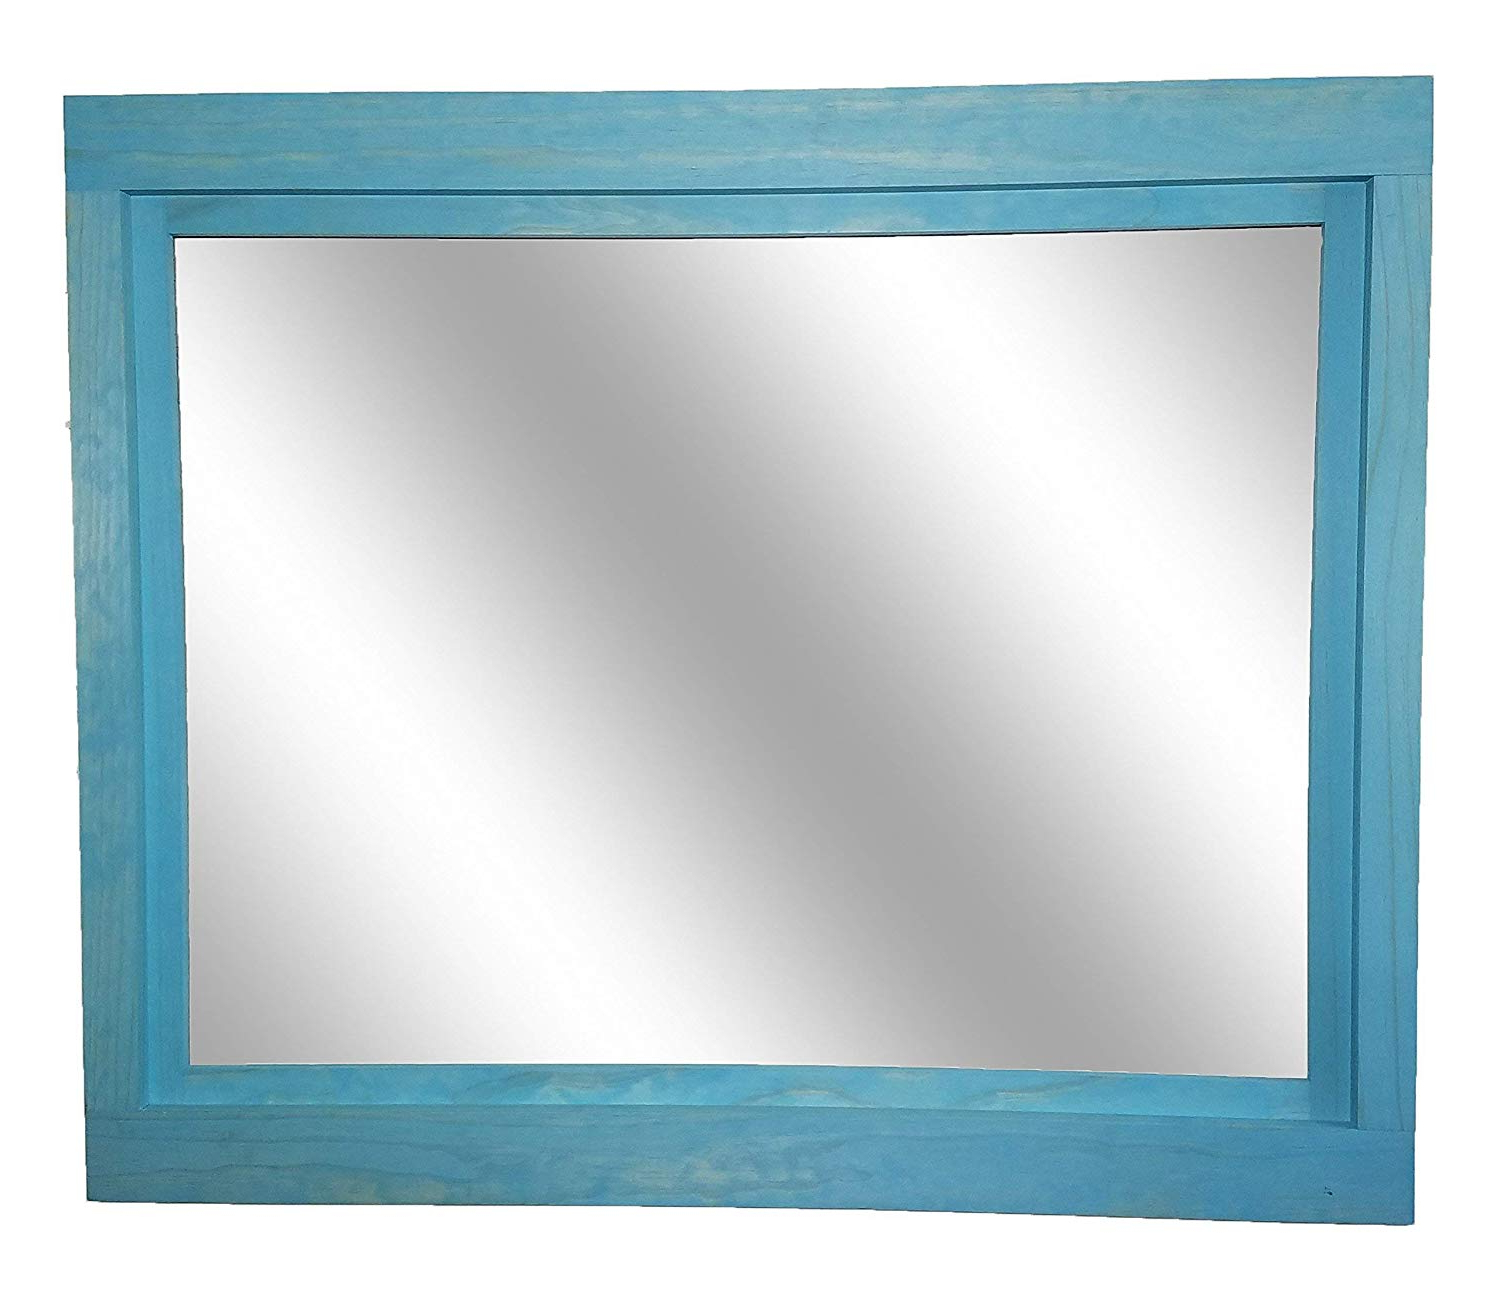 Amazon: Farmhouse Large Framed Mirror Available In 5 Sizes And With Most Popular Aqua Wall Mirrors (View 16 of 20)